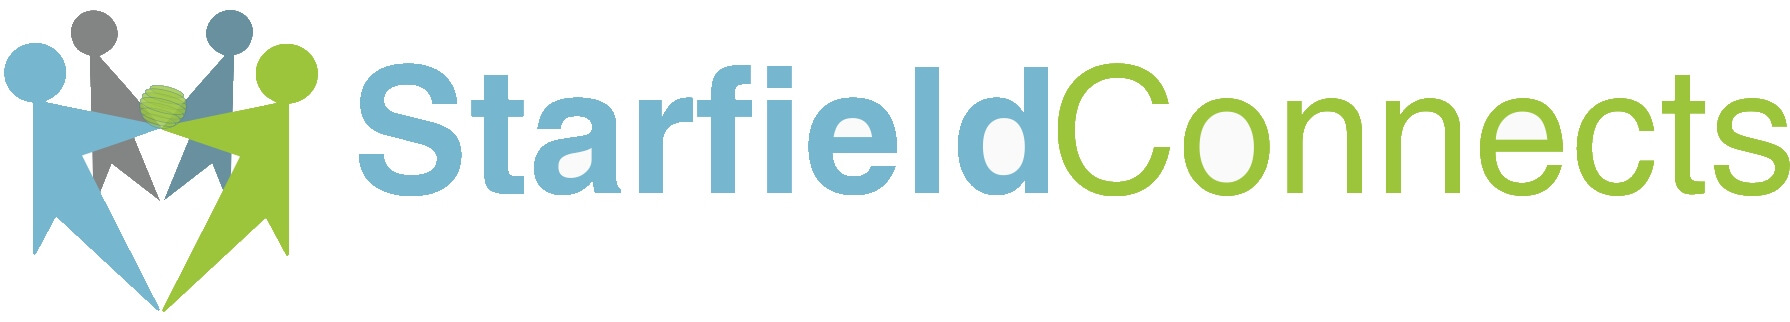 StarfieldConnects